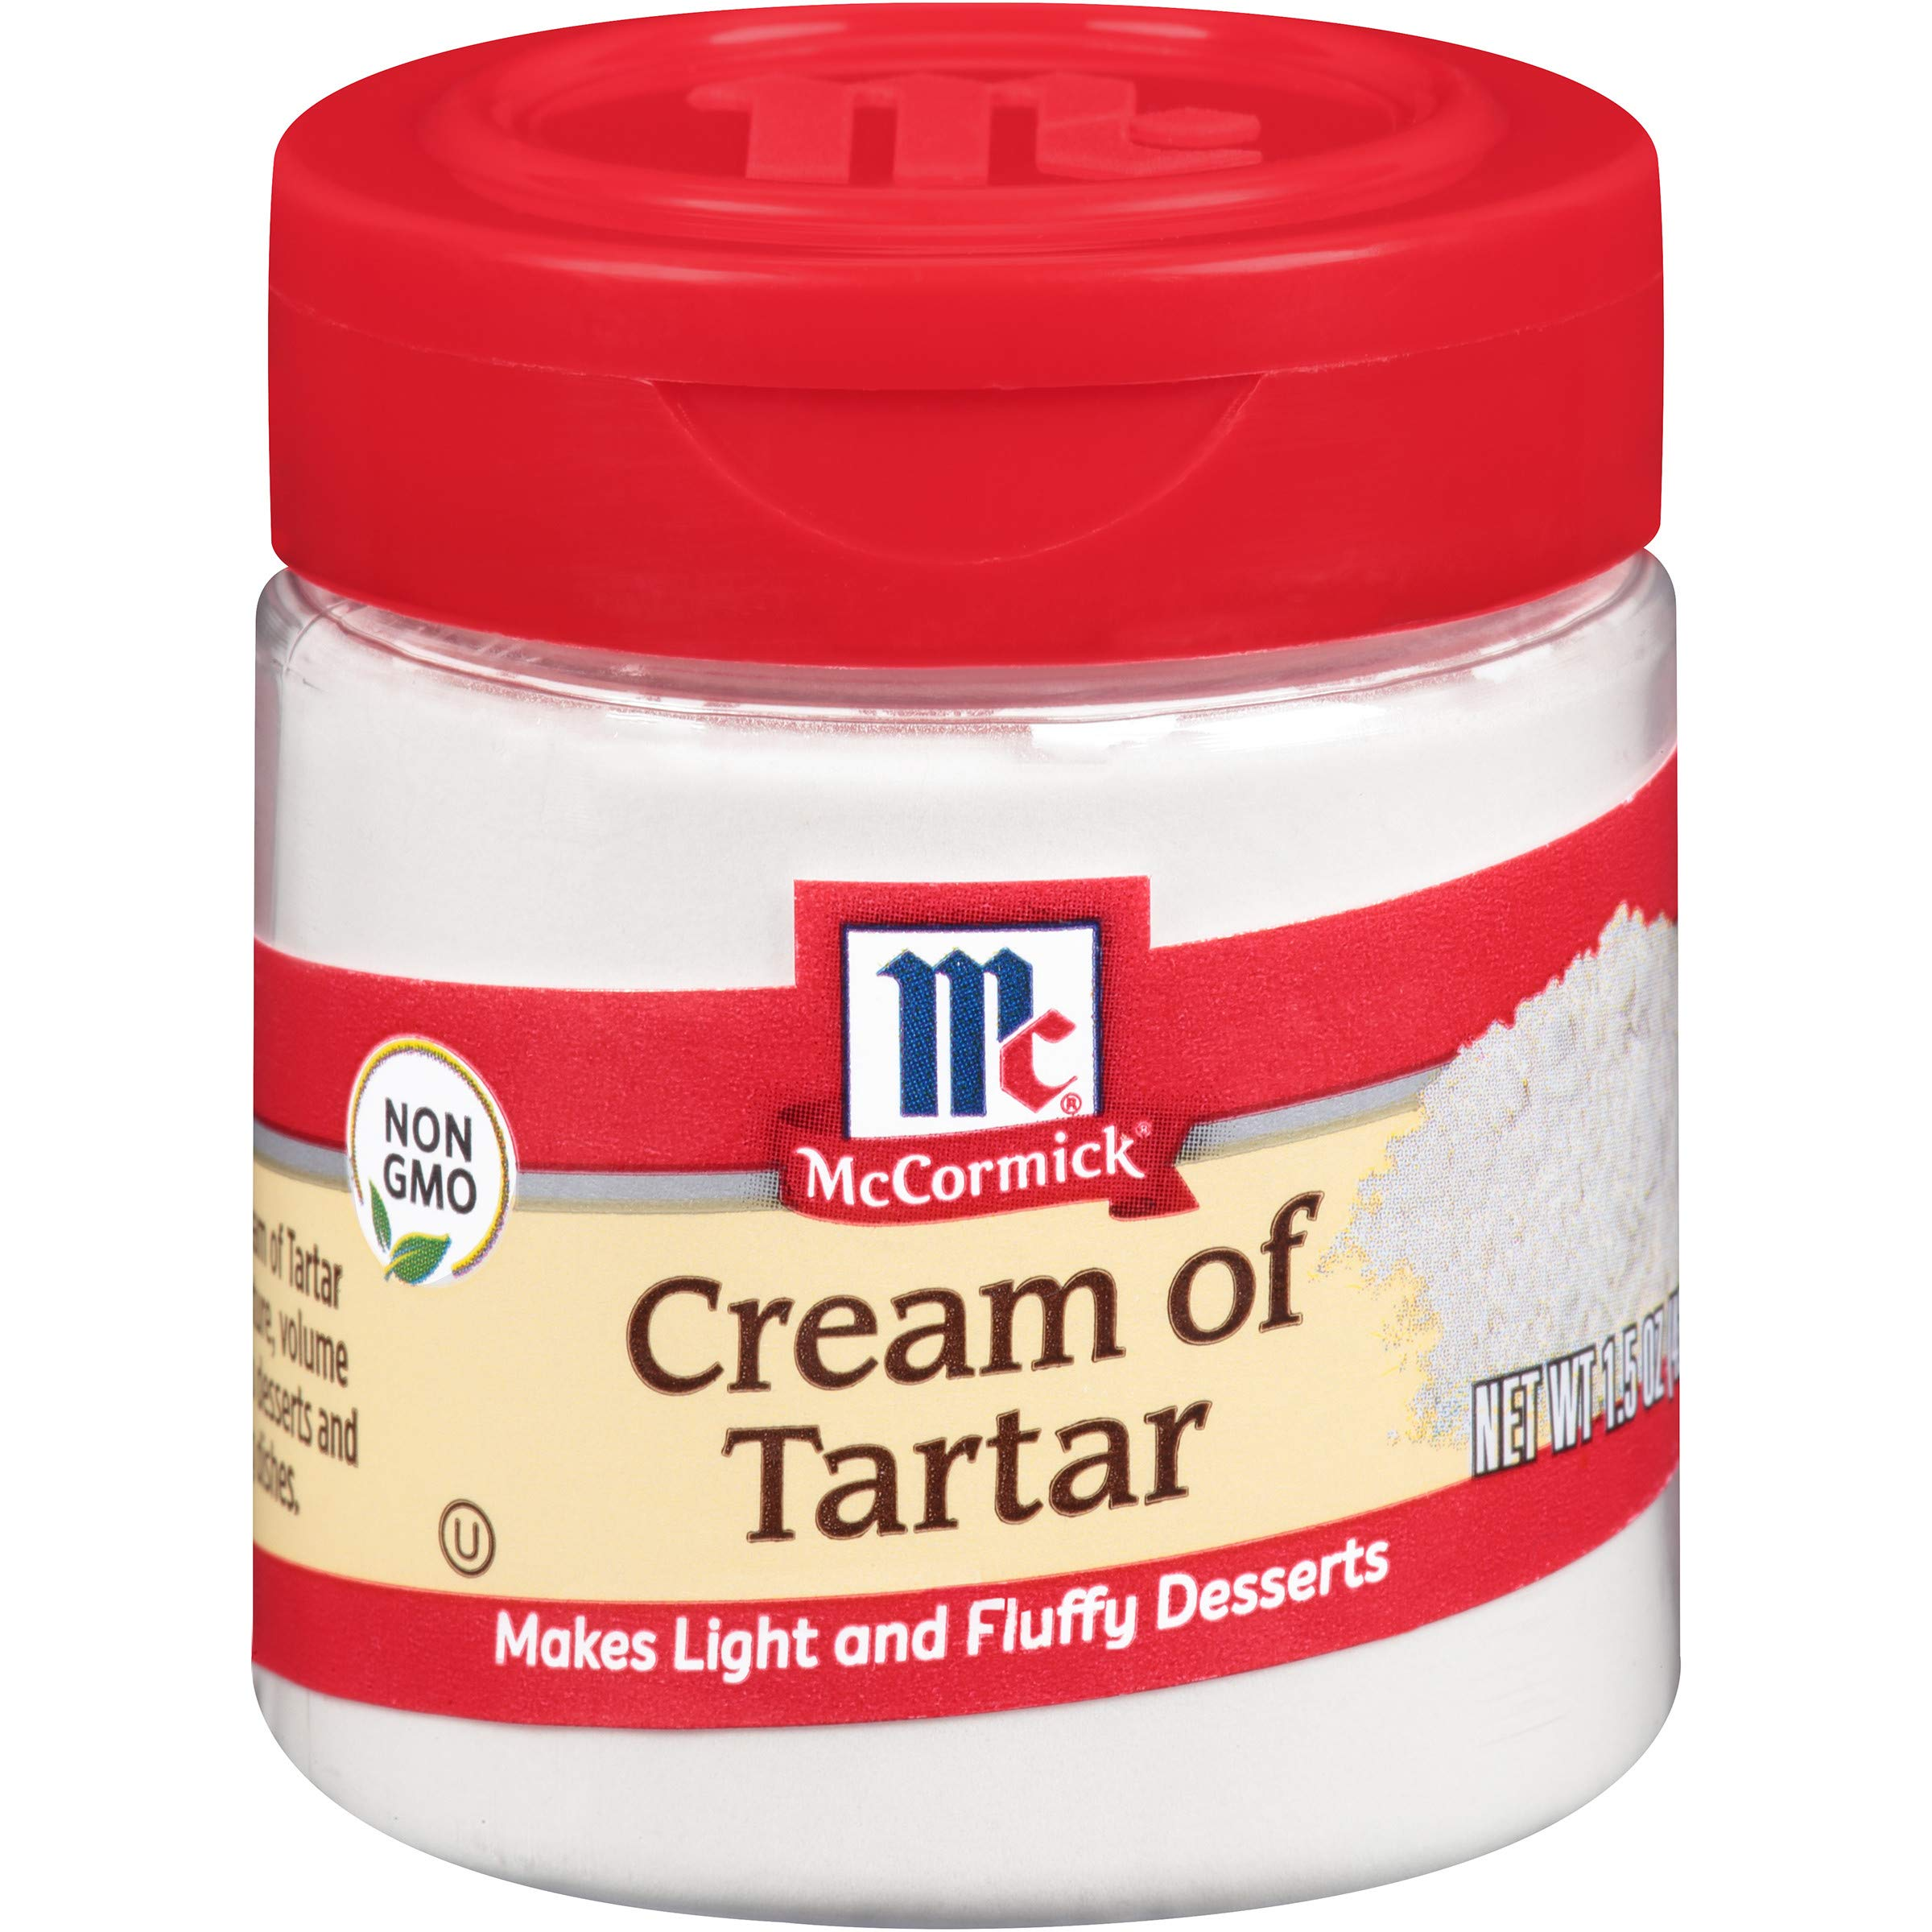 McCormick Cream Of Tartar, 1.5 Ounce (Pack of 6)